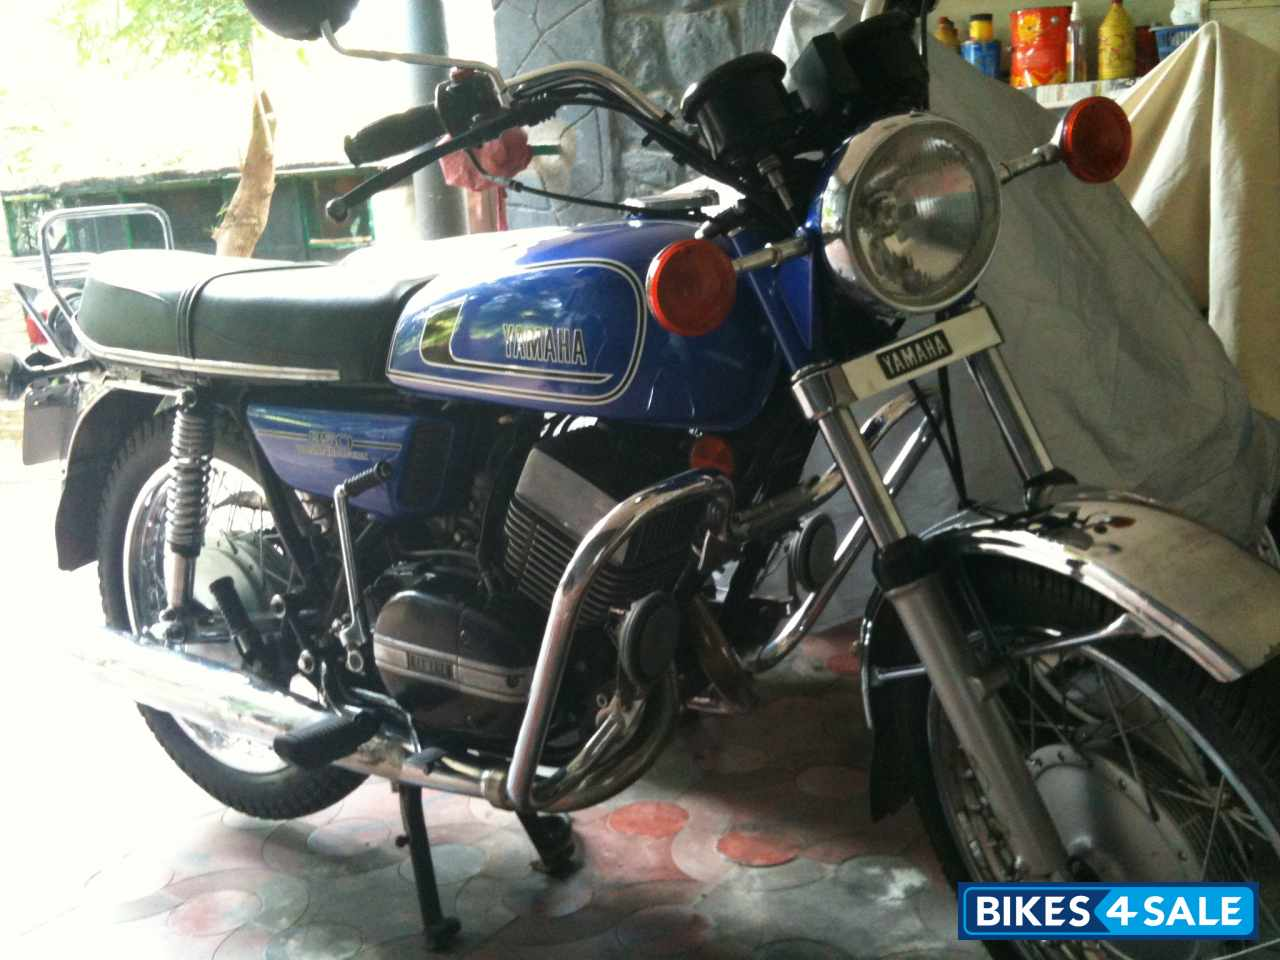 Used 1984 model Yamaha RD 350 for sale in Chennai  ID 31445